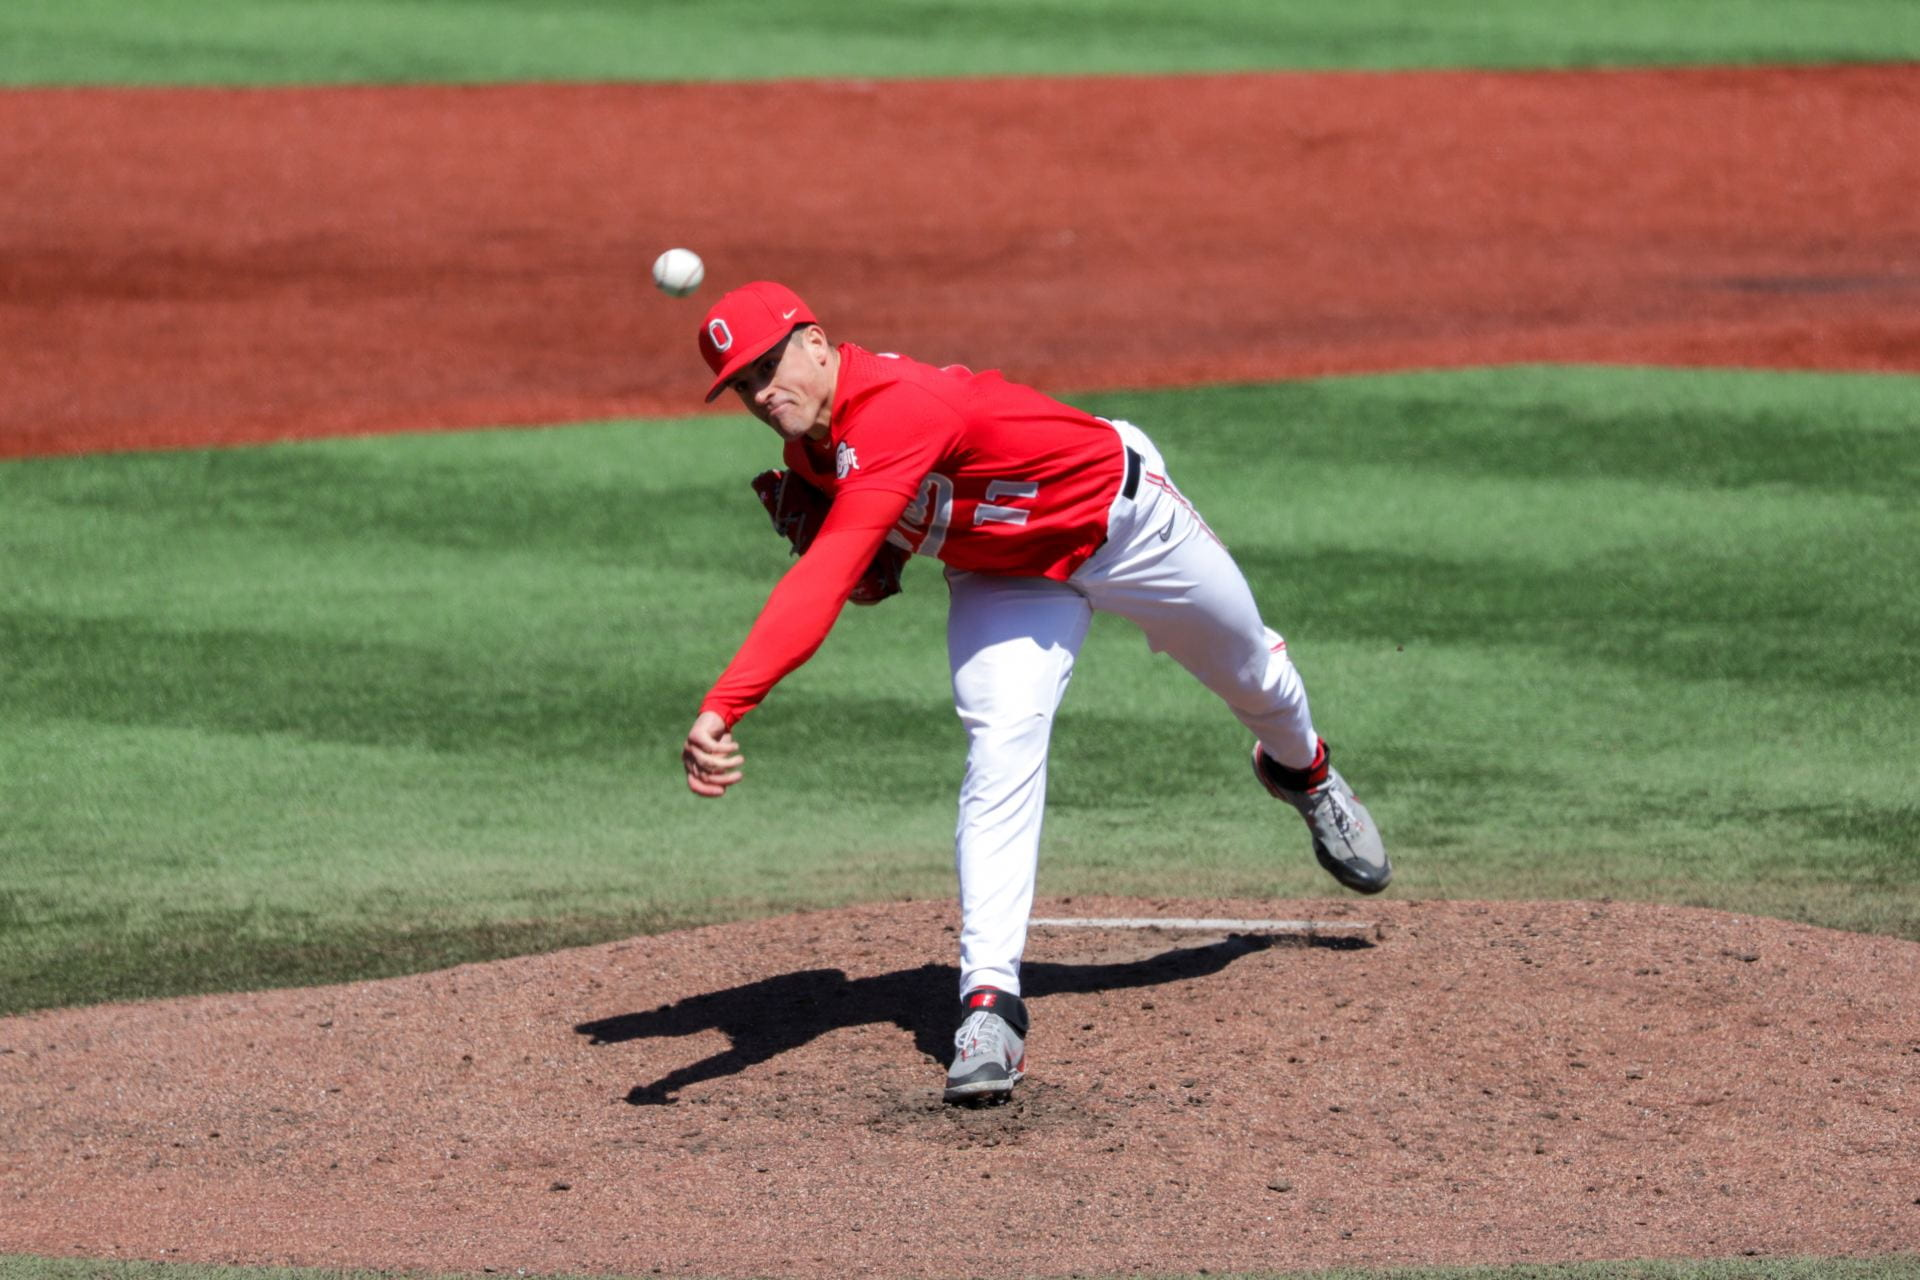 Baseball: Ohio State swept by Maryland, losing streak at five